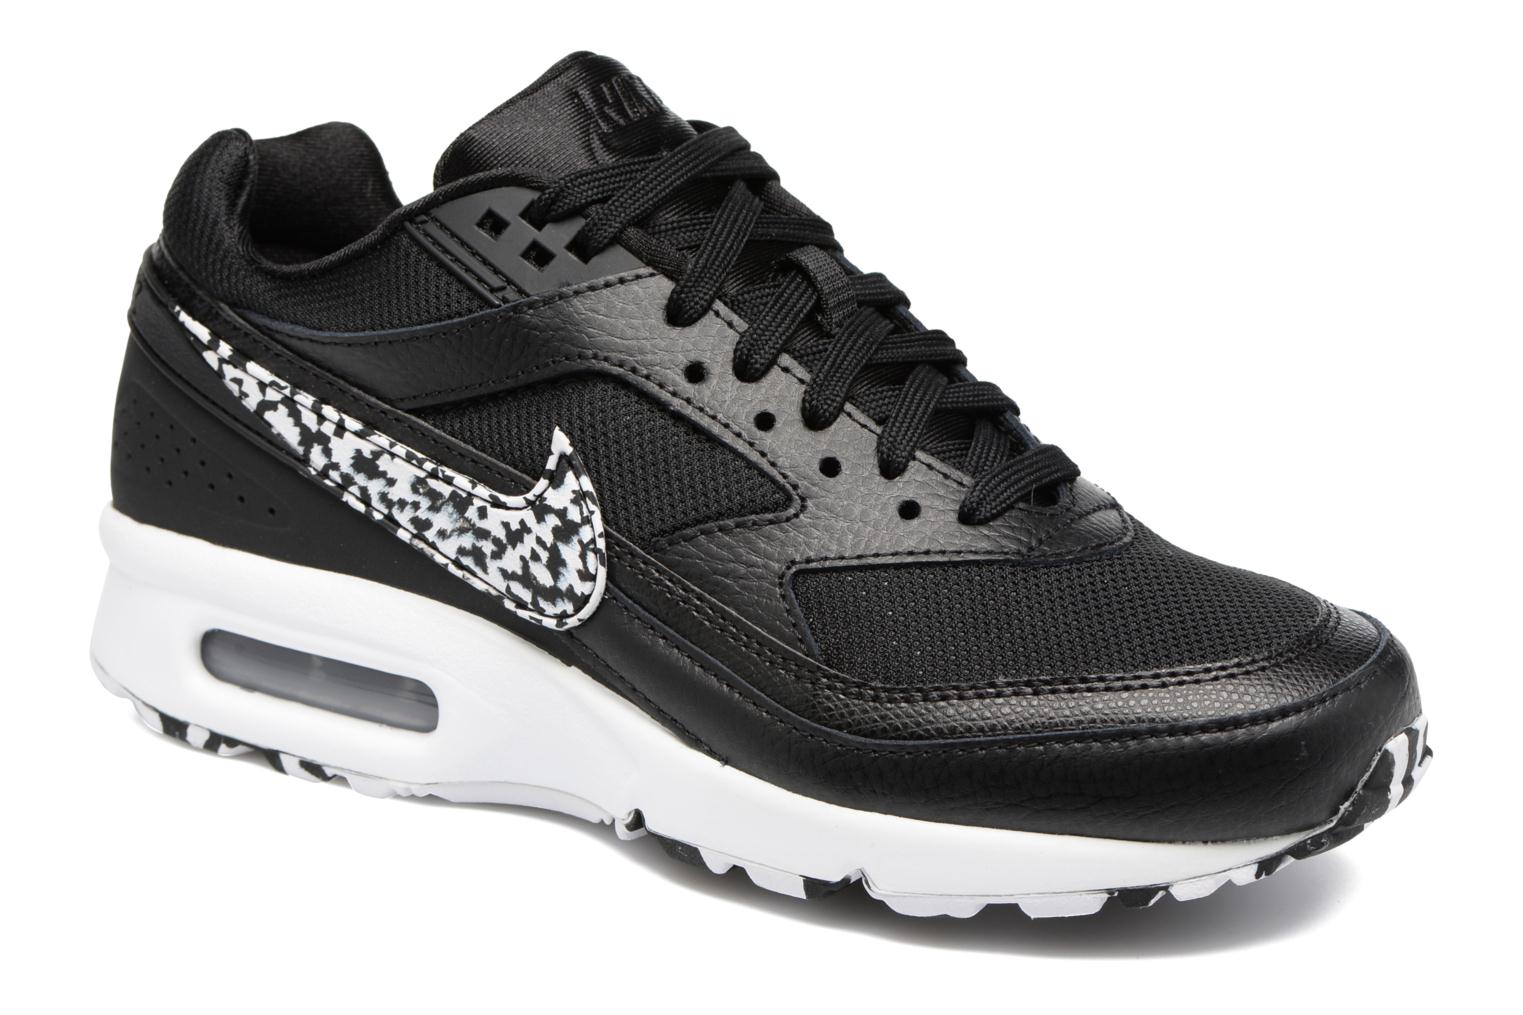 Wmns Air Max Bw Black/black-White